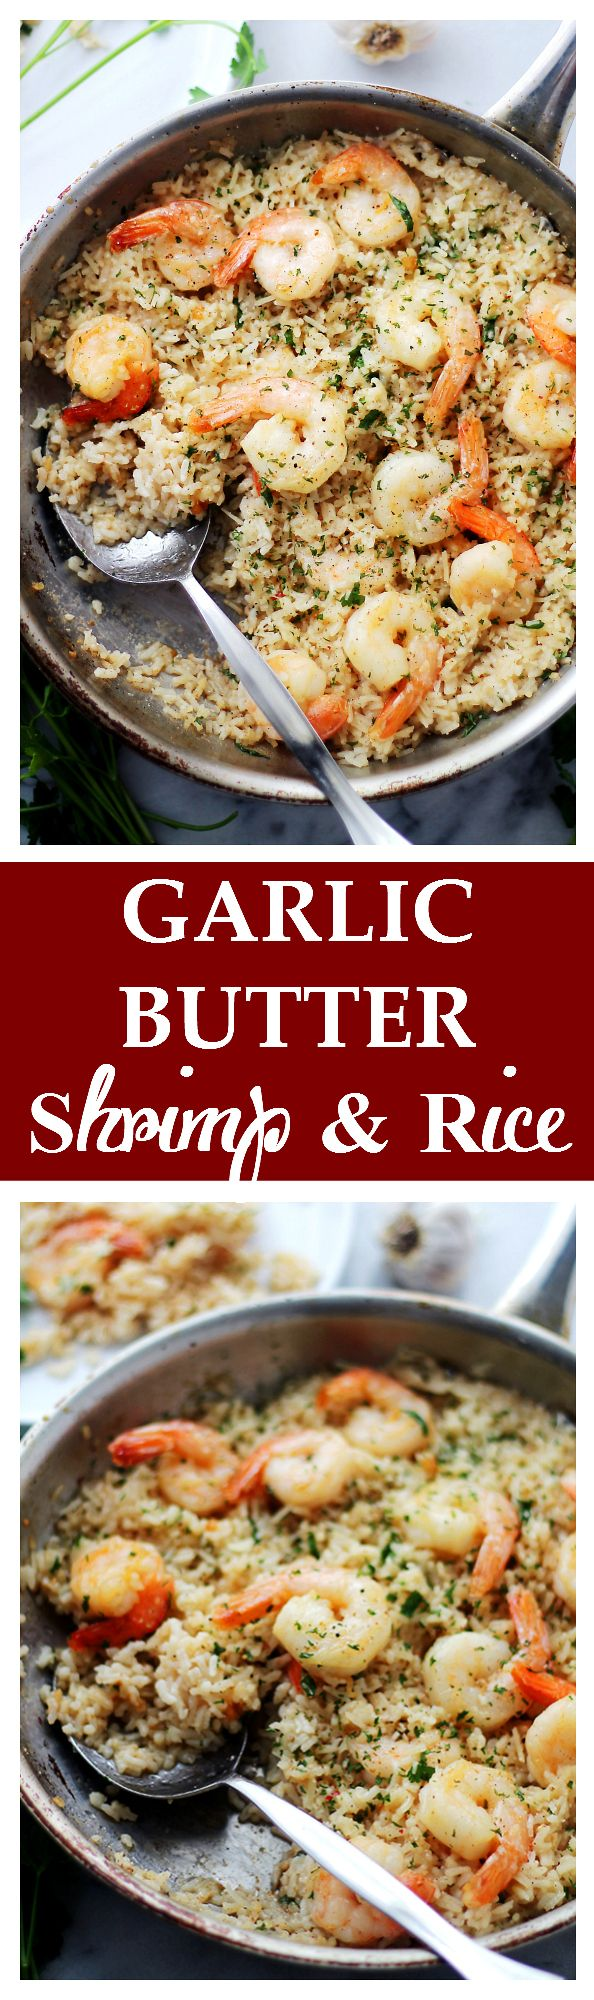 //Garlic Butter Shrimp and Rice - Garlic Butter lends an amazing flavor to this speedy and incredibly delicious meal with Shrimp and Rice. Get the recipe on diethood.com #food